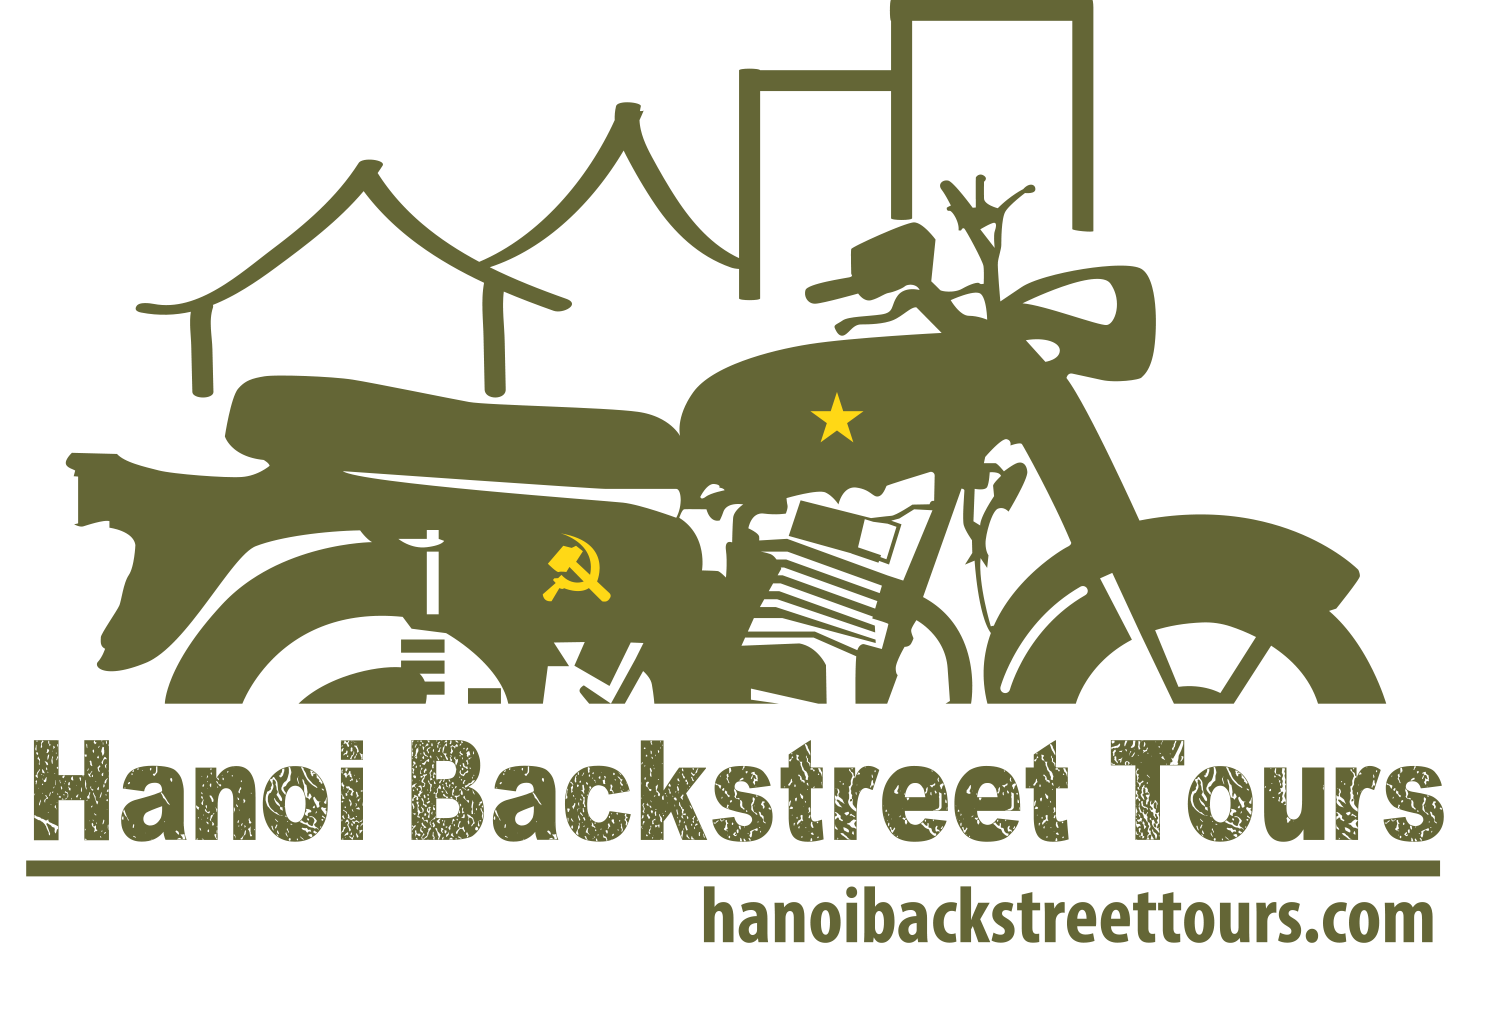 Hanoi Backstreet Tours - Hanoi Motorcycle Tours- Hanoi Jeep Tours- Hanoi Food Tours on foot